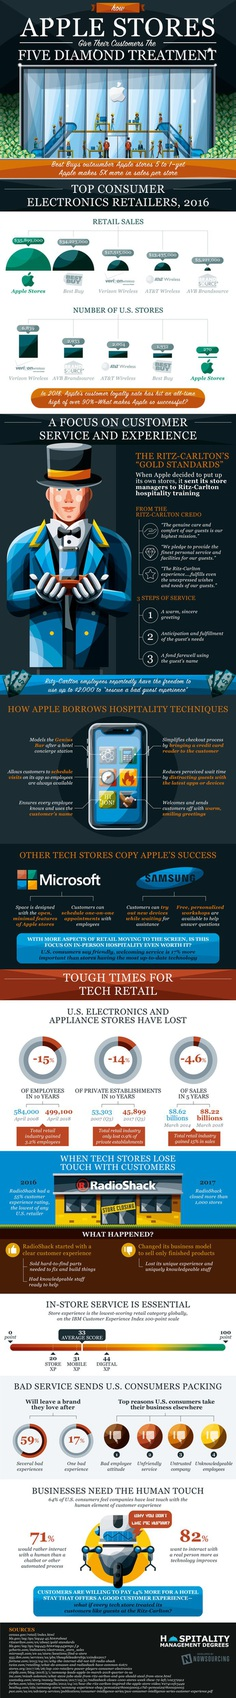 How Apple Stores Give Their Customers Five Diamond Treatment [Infographic] – Hospitality Management Degrees